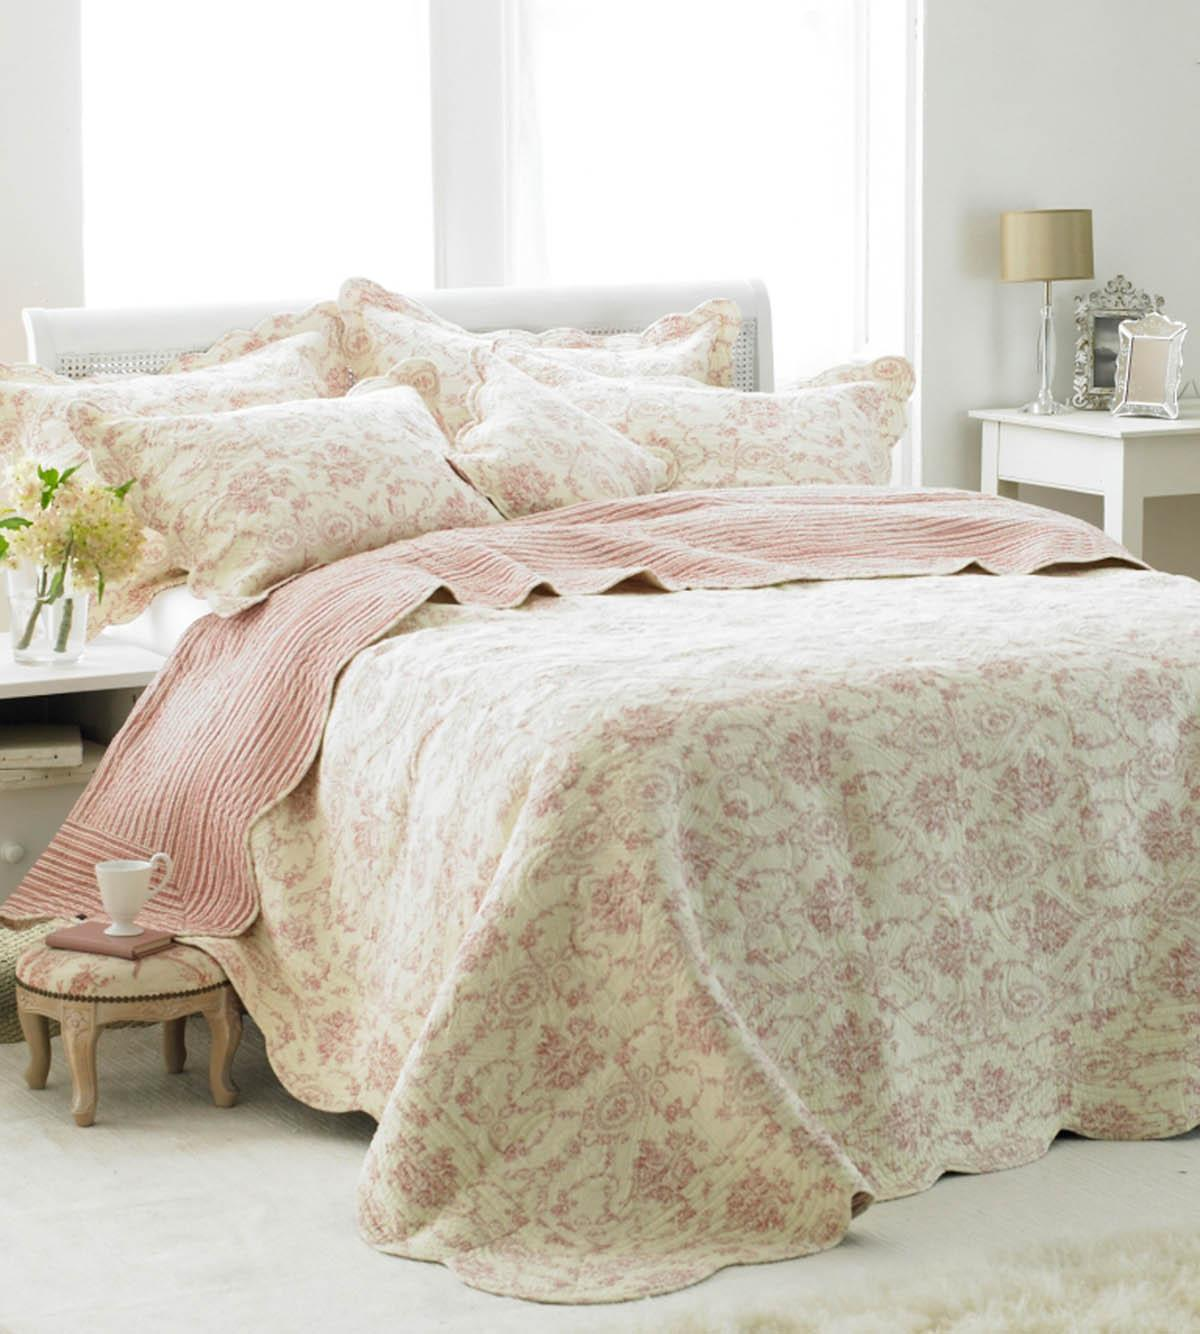 Rose Etoille Quilted Bedspread